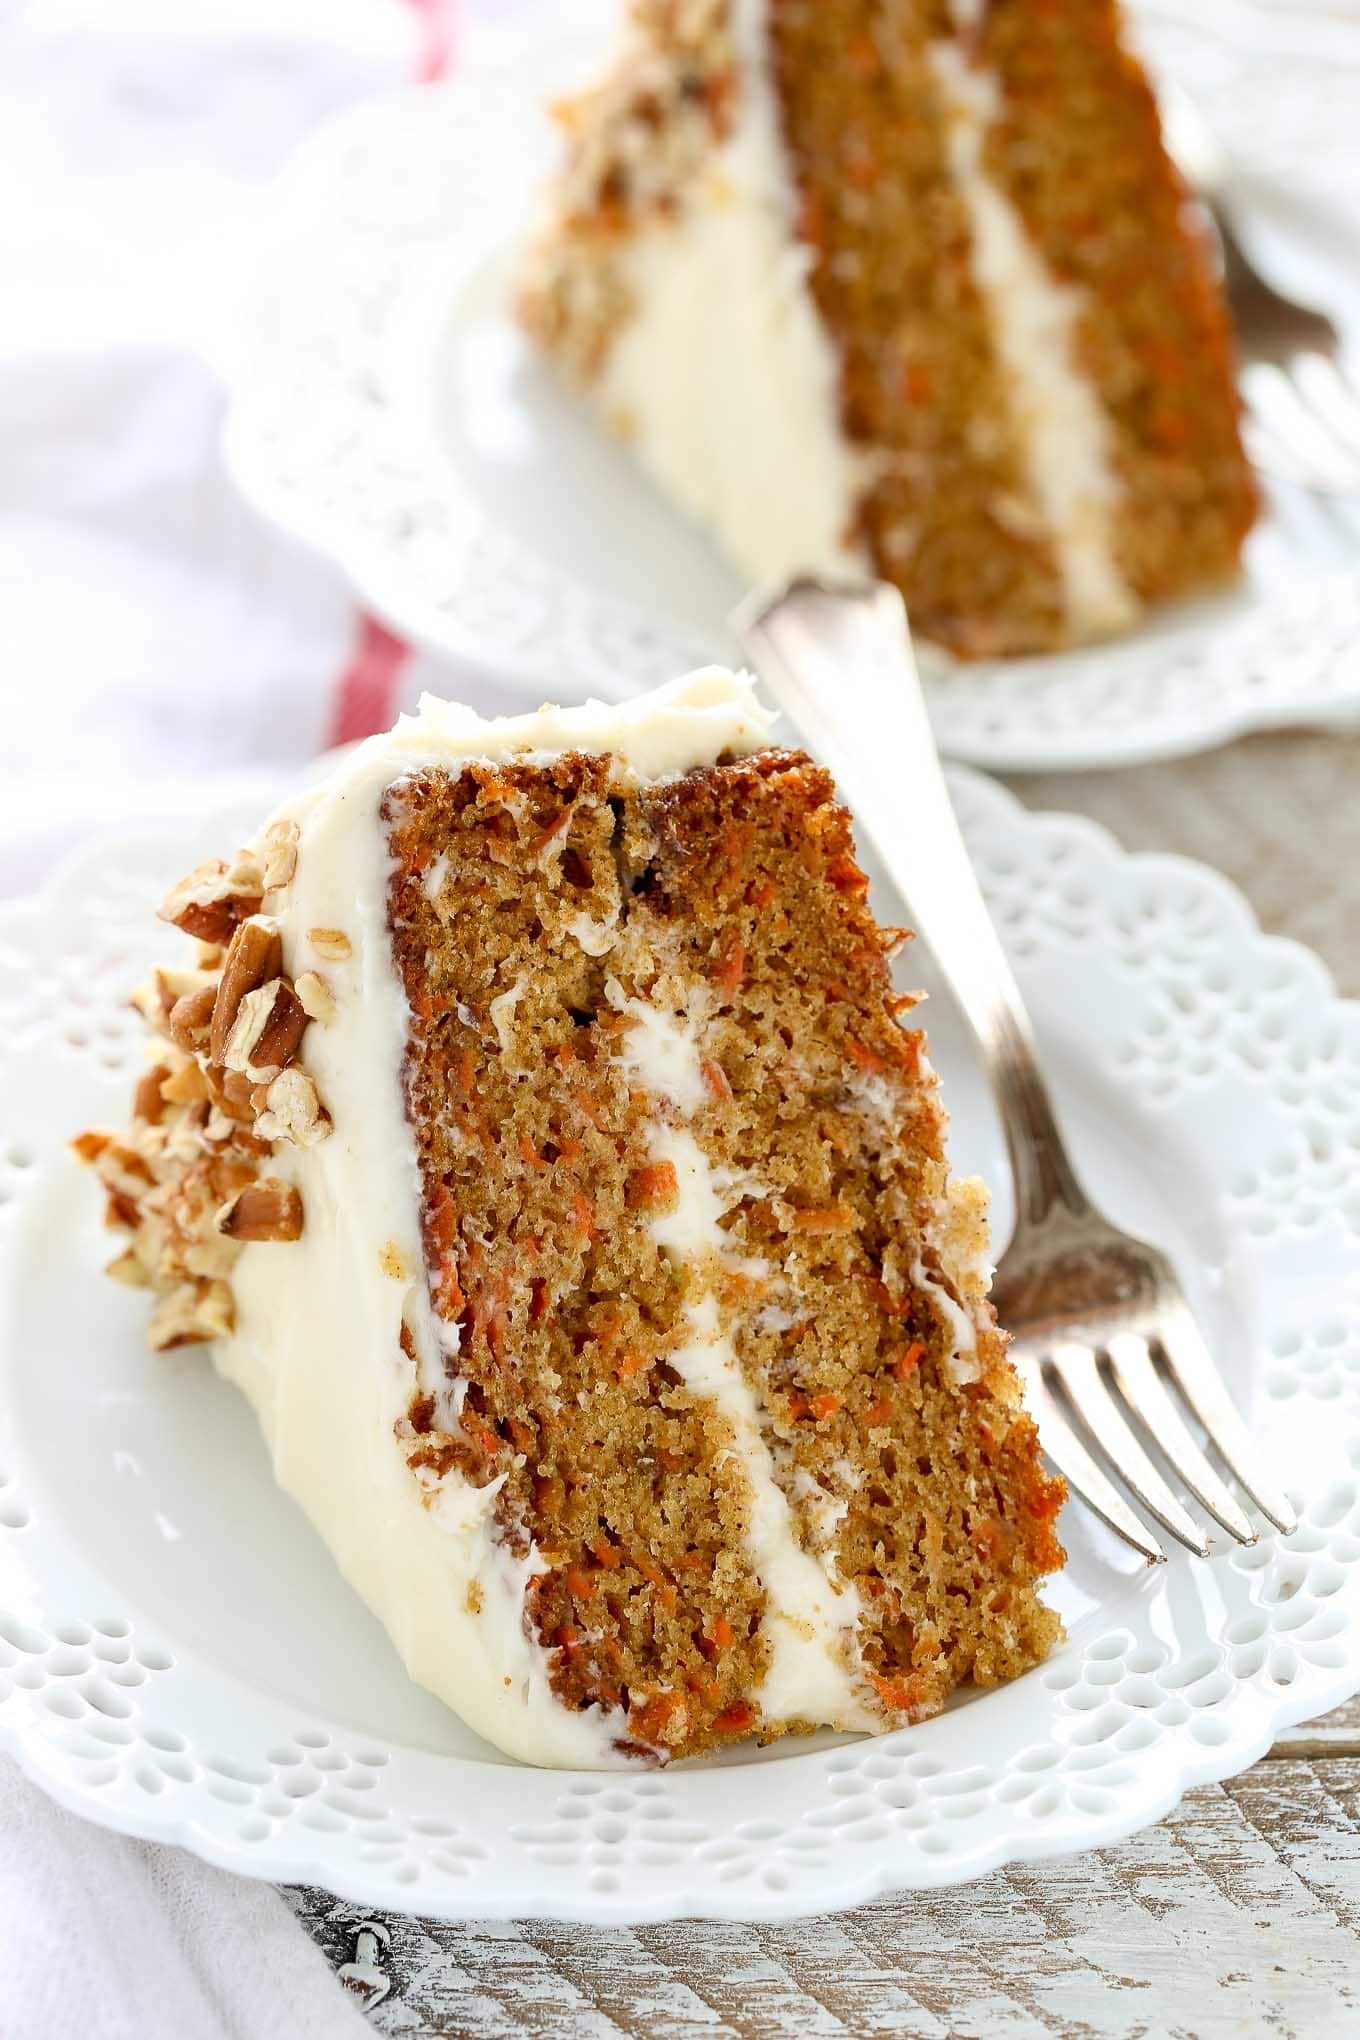 This Is My Favorite Recipe For Homemade Carrot Cake So Easy To